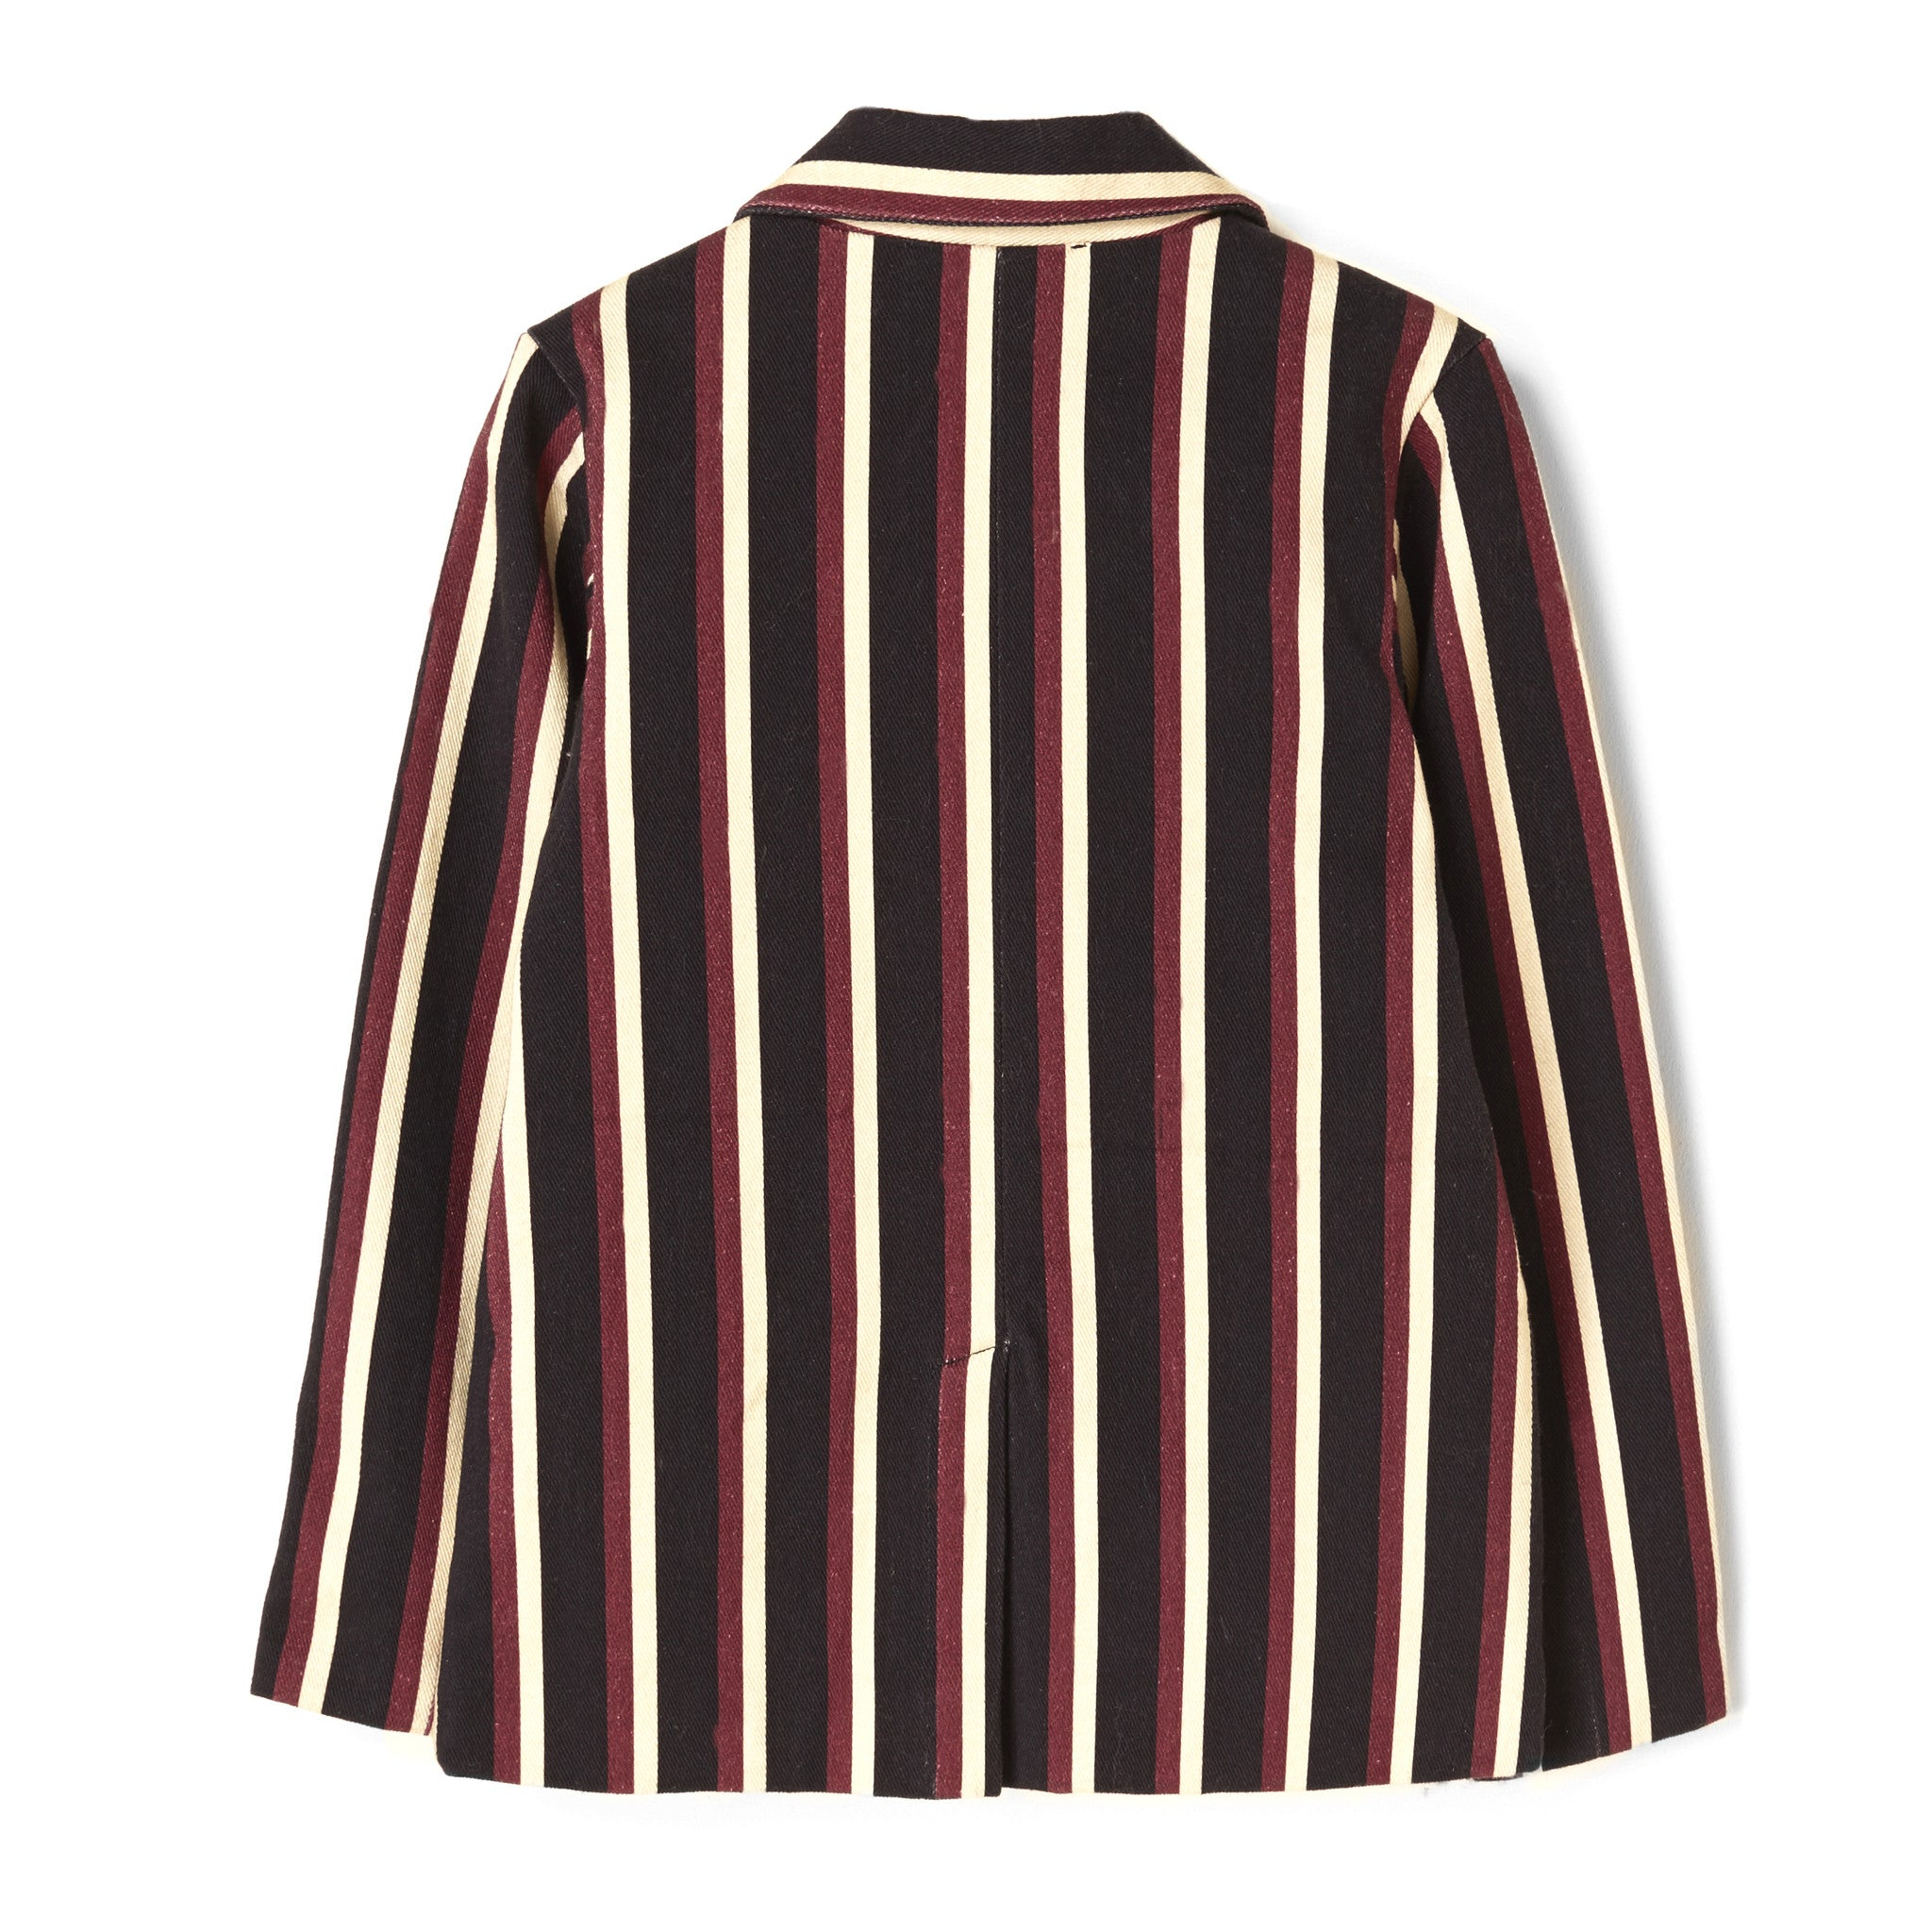 BAILEY Multicolor Stripes - Tailored Jacket